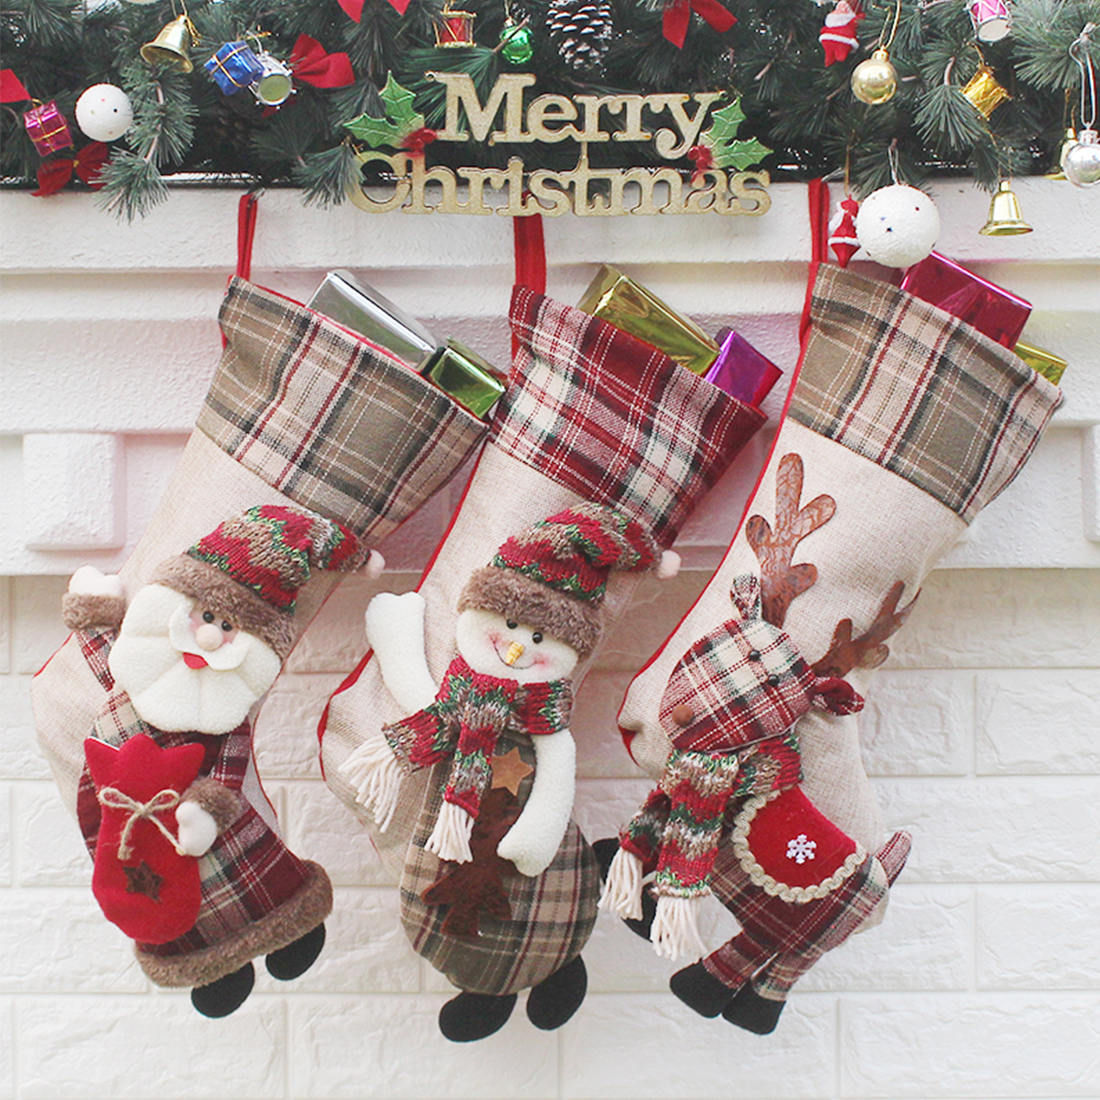 Home Cute Christmas Stocking Chrismas Decorations for Home Christmas Tree Ornaments Gift Holders Stockings